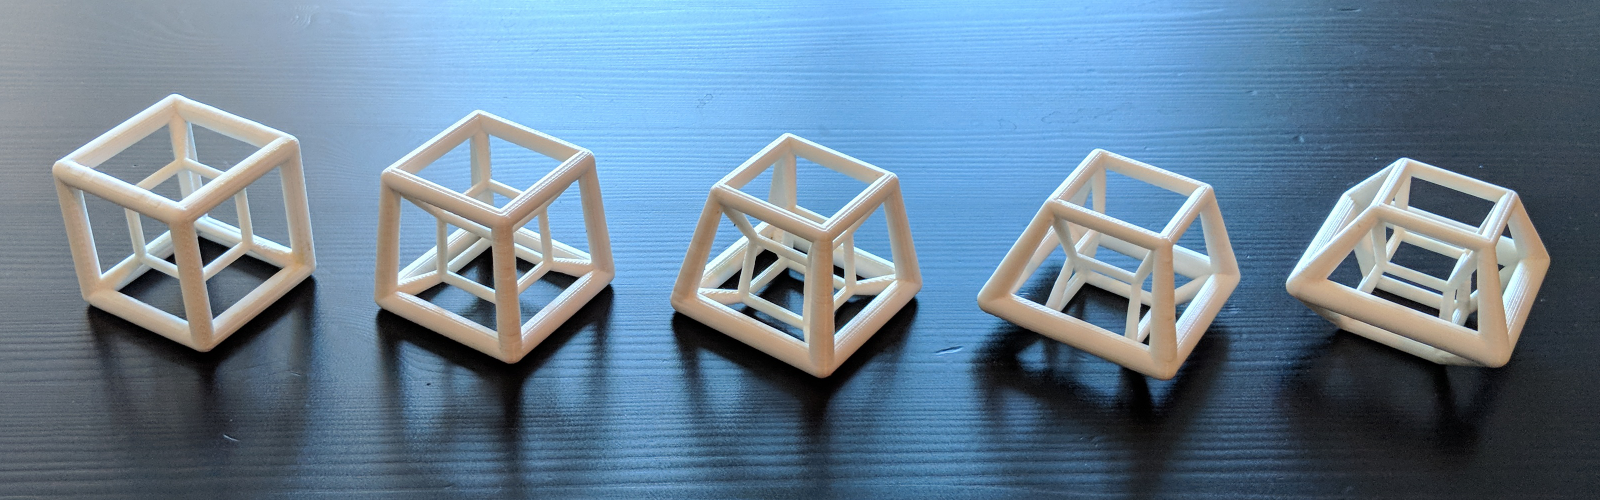 series of five printed hypercubes in a row, sitting on a wooden table.